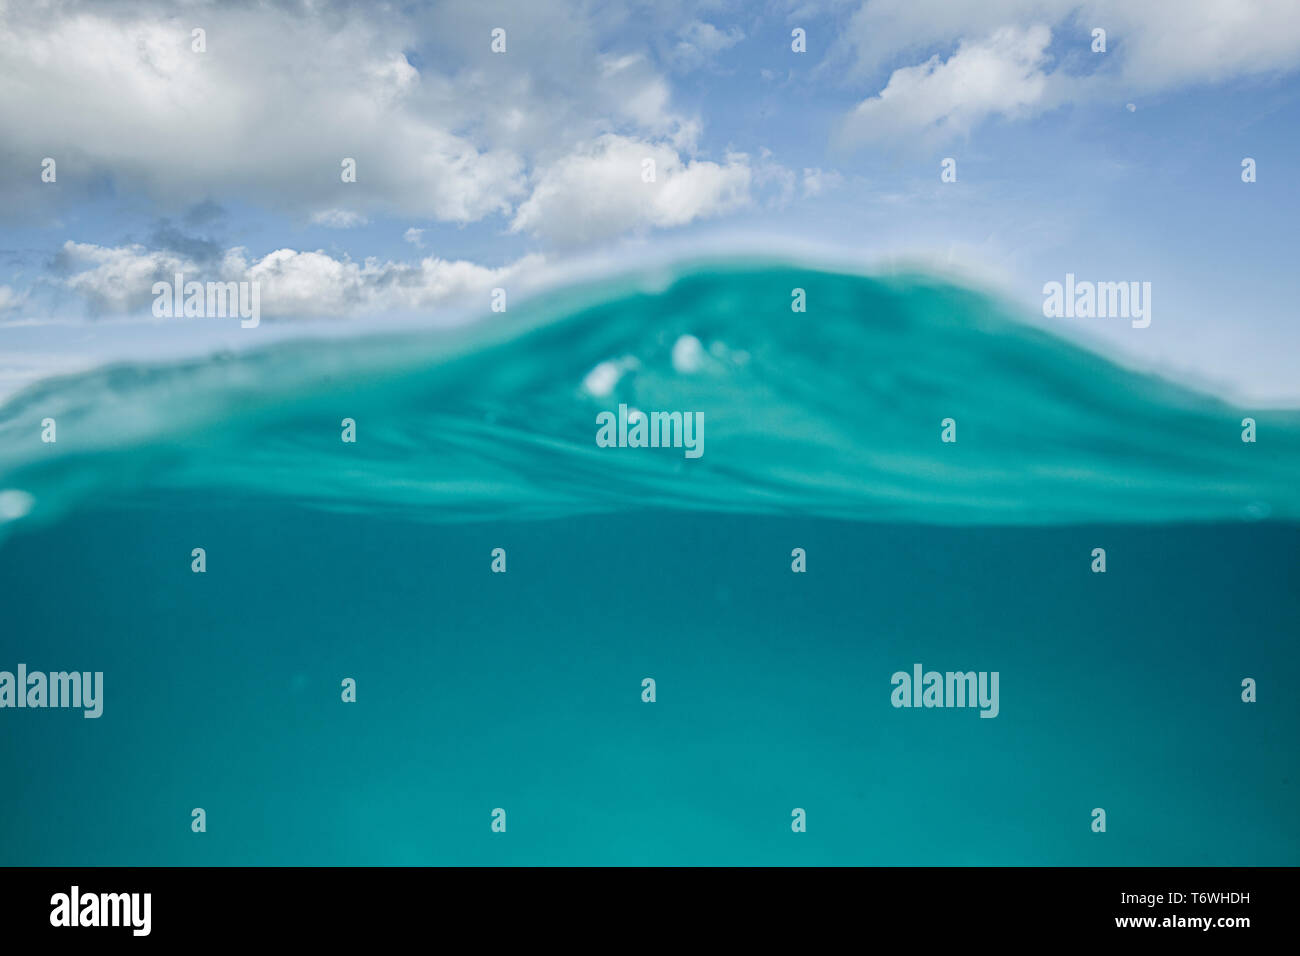 A split level shot of turquoise ocean water and clouds in a blue sky - Stock Image